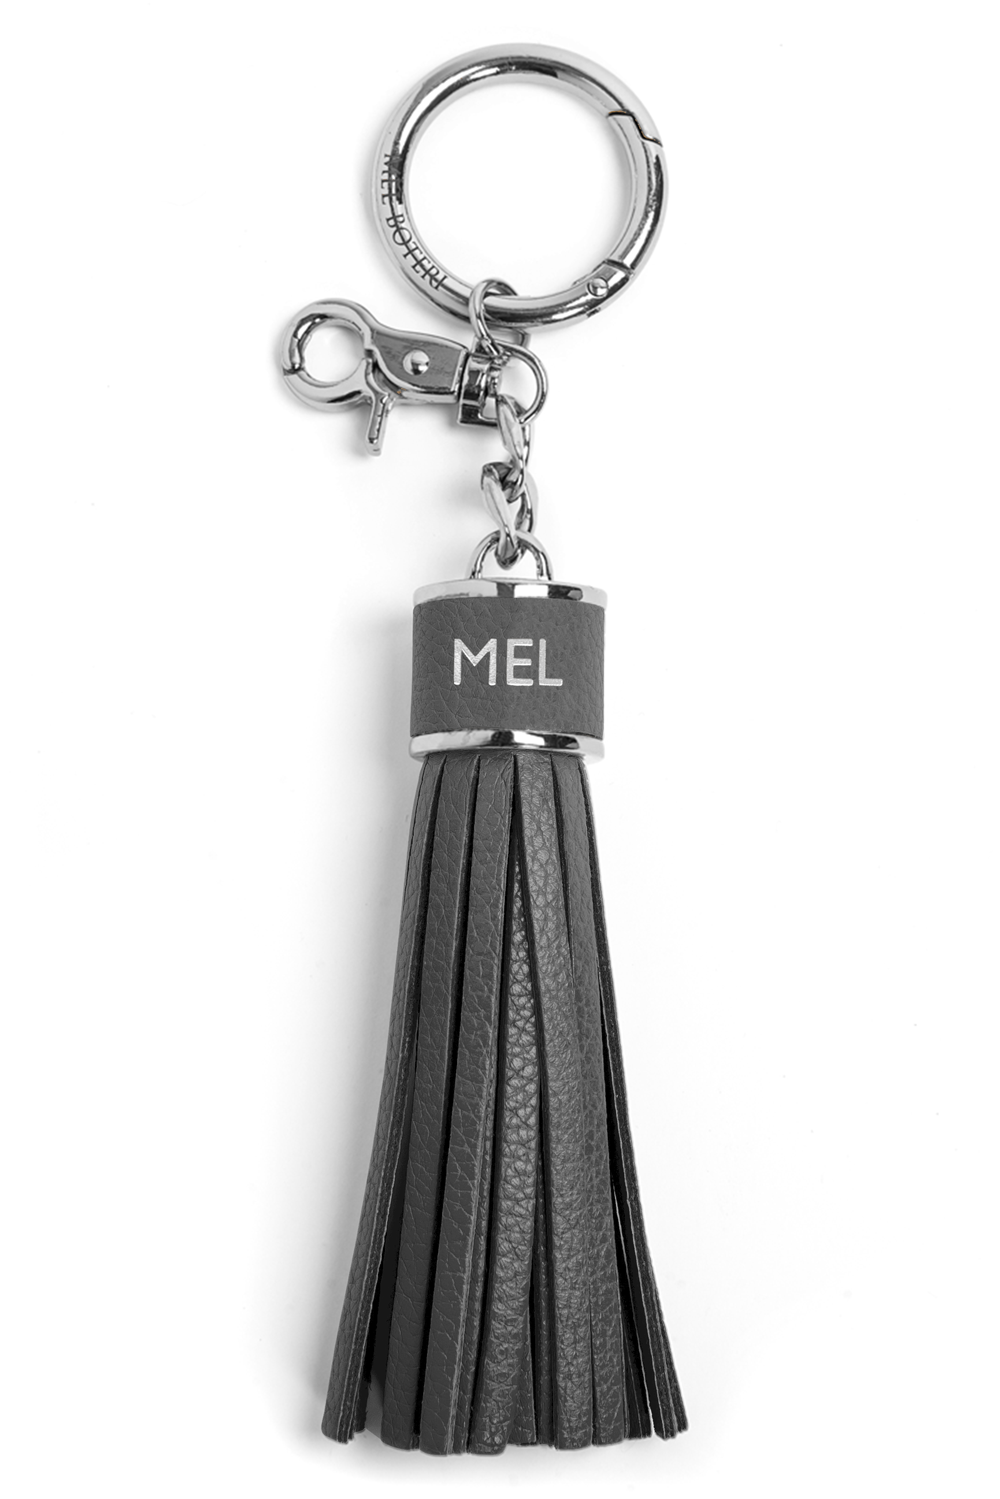 The Mel Boteri Pebbled-Leather Tassel Charm | Stone Leather With Silver Hardware | Mel Boteri Gift Ideas